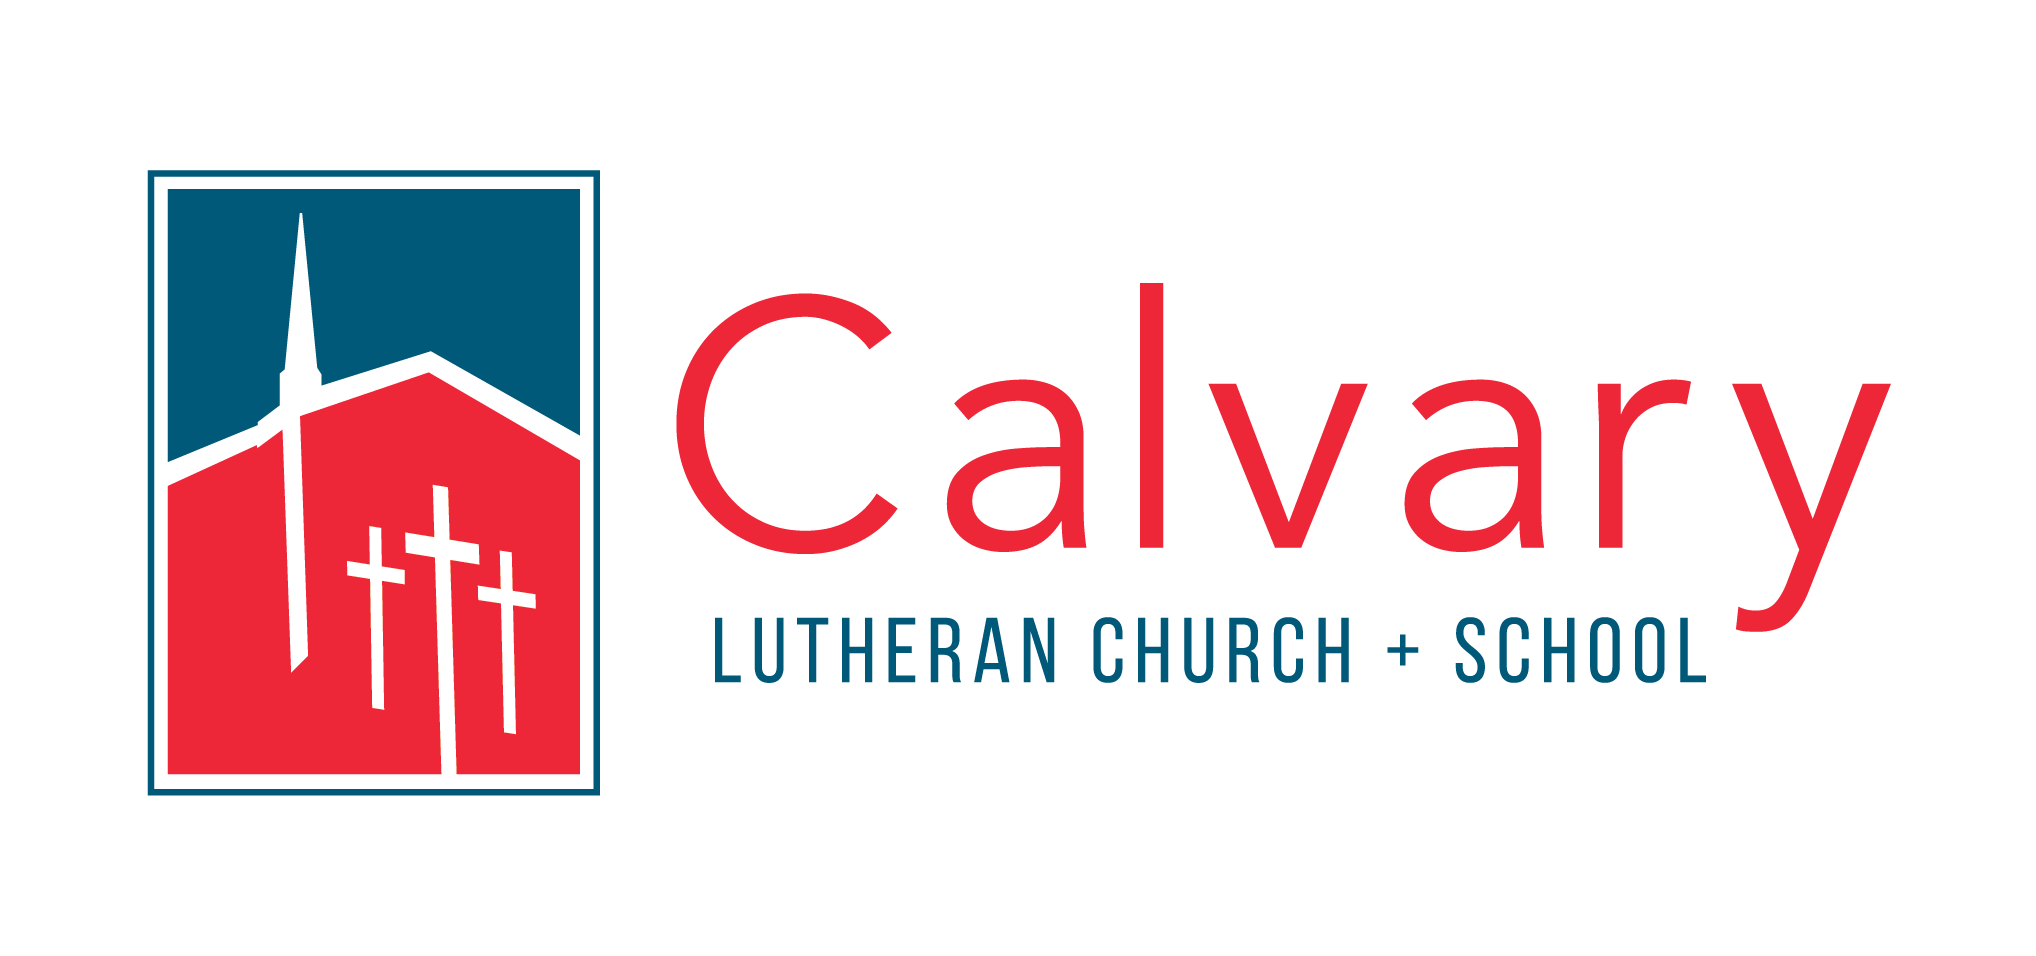 Calvary Lutheran Church + School